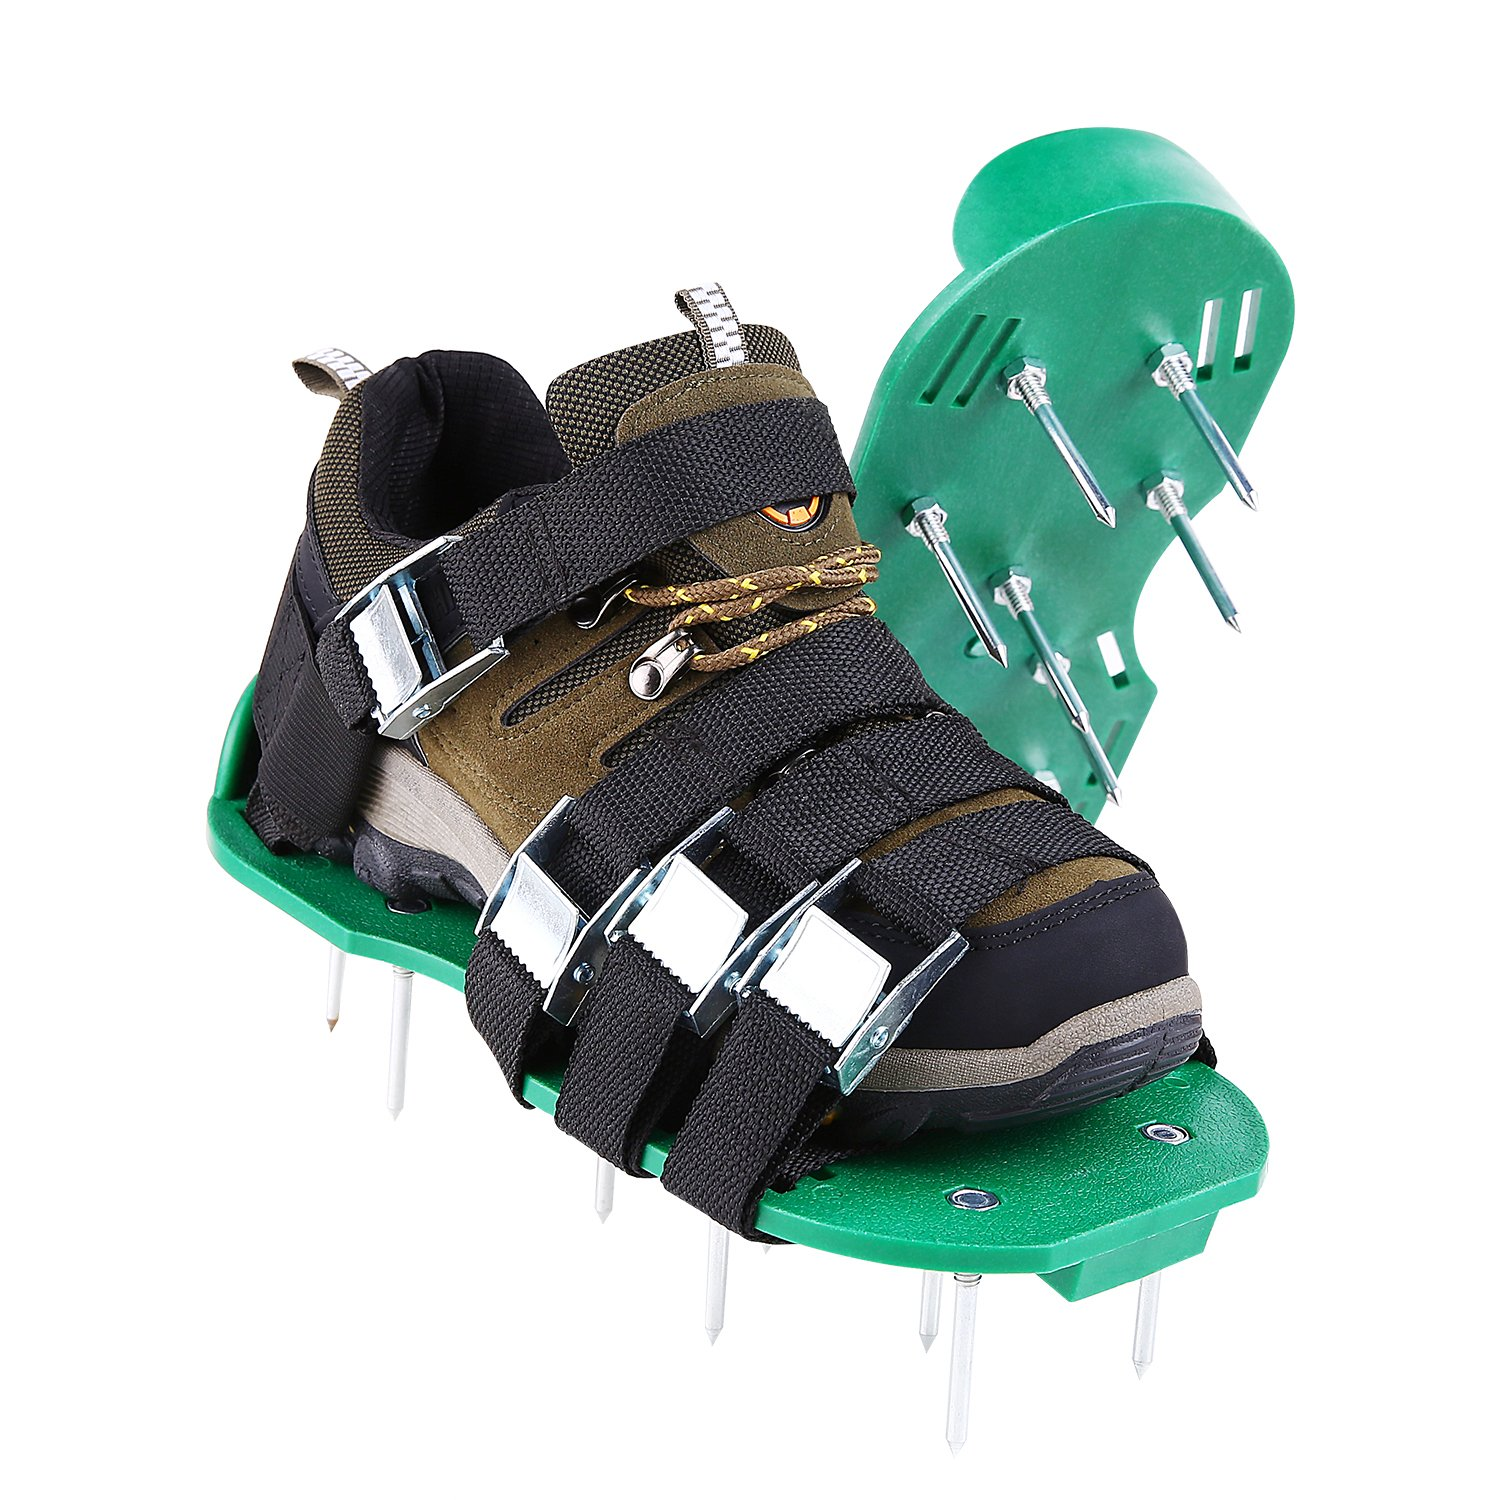 Ohuhu Lawn Aerator Shoes, 4X Adjustable Aluminium Alloy Buckles & 1x Heal Elastic Band Unique Design | Heavy Duty Spiked Sandals for Aerating Your Lawn or Yard